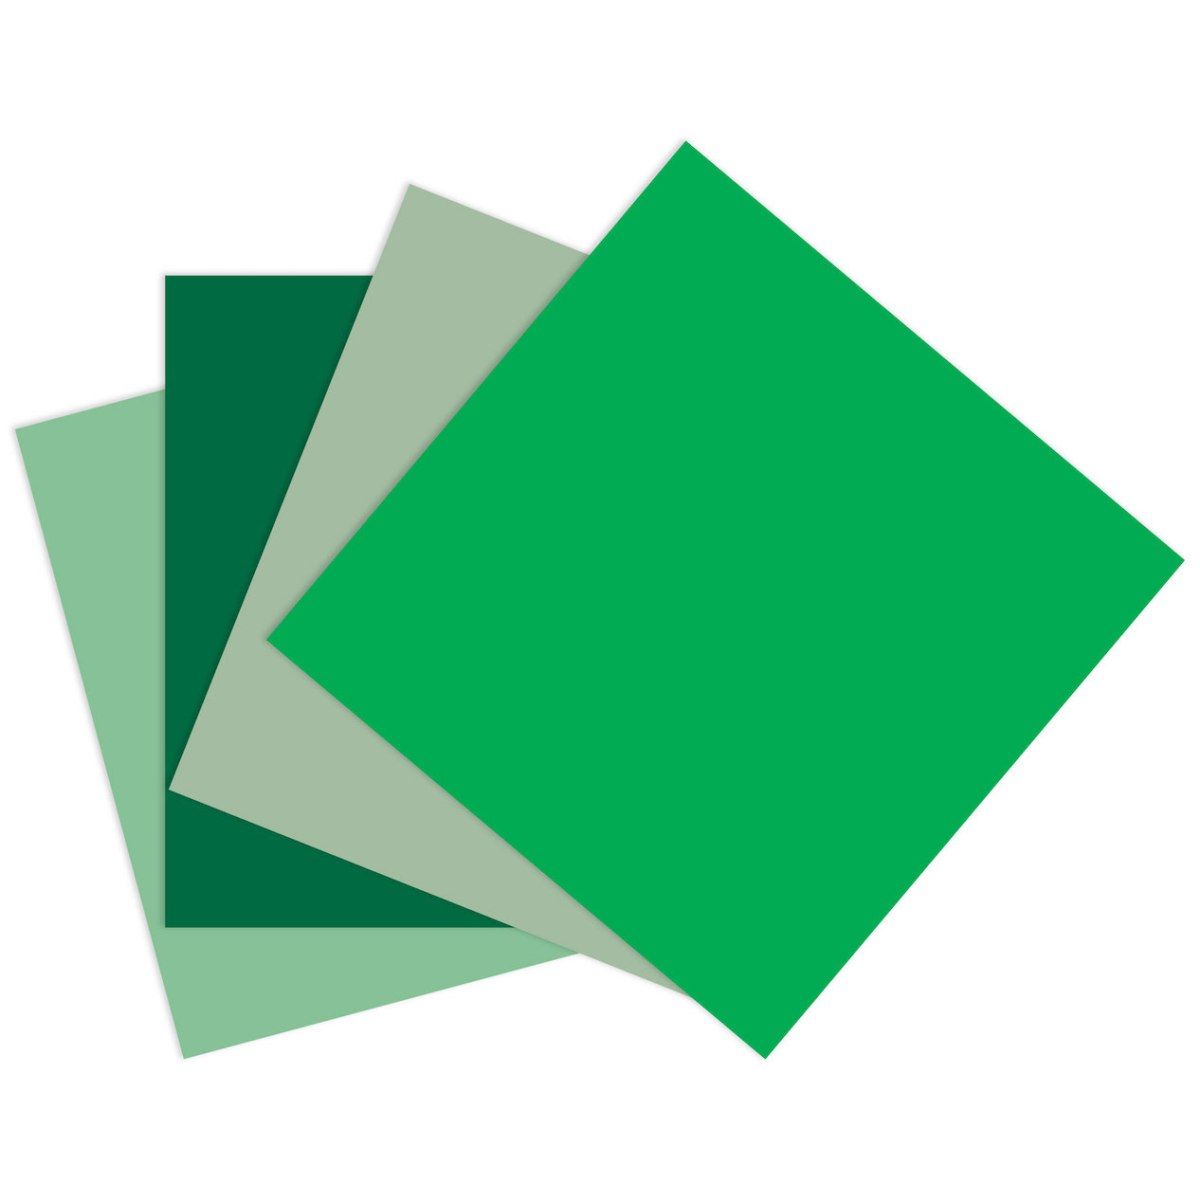 Cardstock Carnival #ctmh #closetomyheart #cardstock #exclusivecolorpalette #exclusivecolourpalatte #ctmhcolors #cmthcolours #green #julep #evergreen #sage #clover